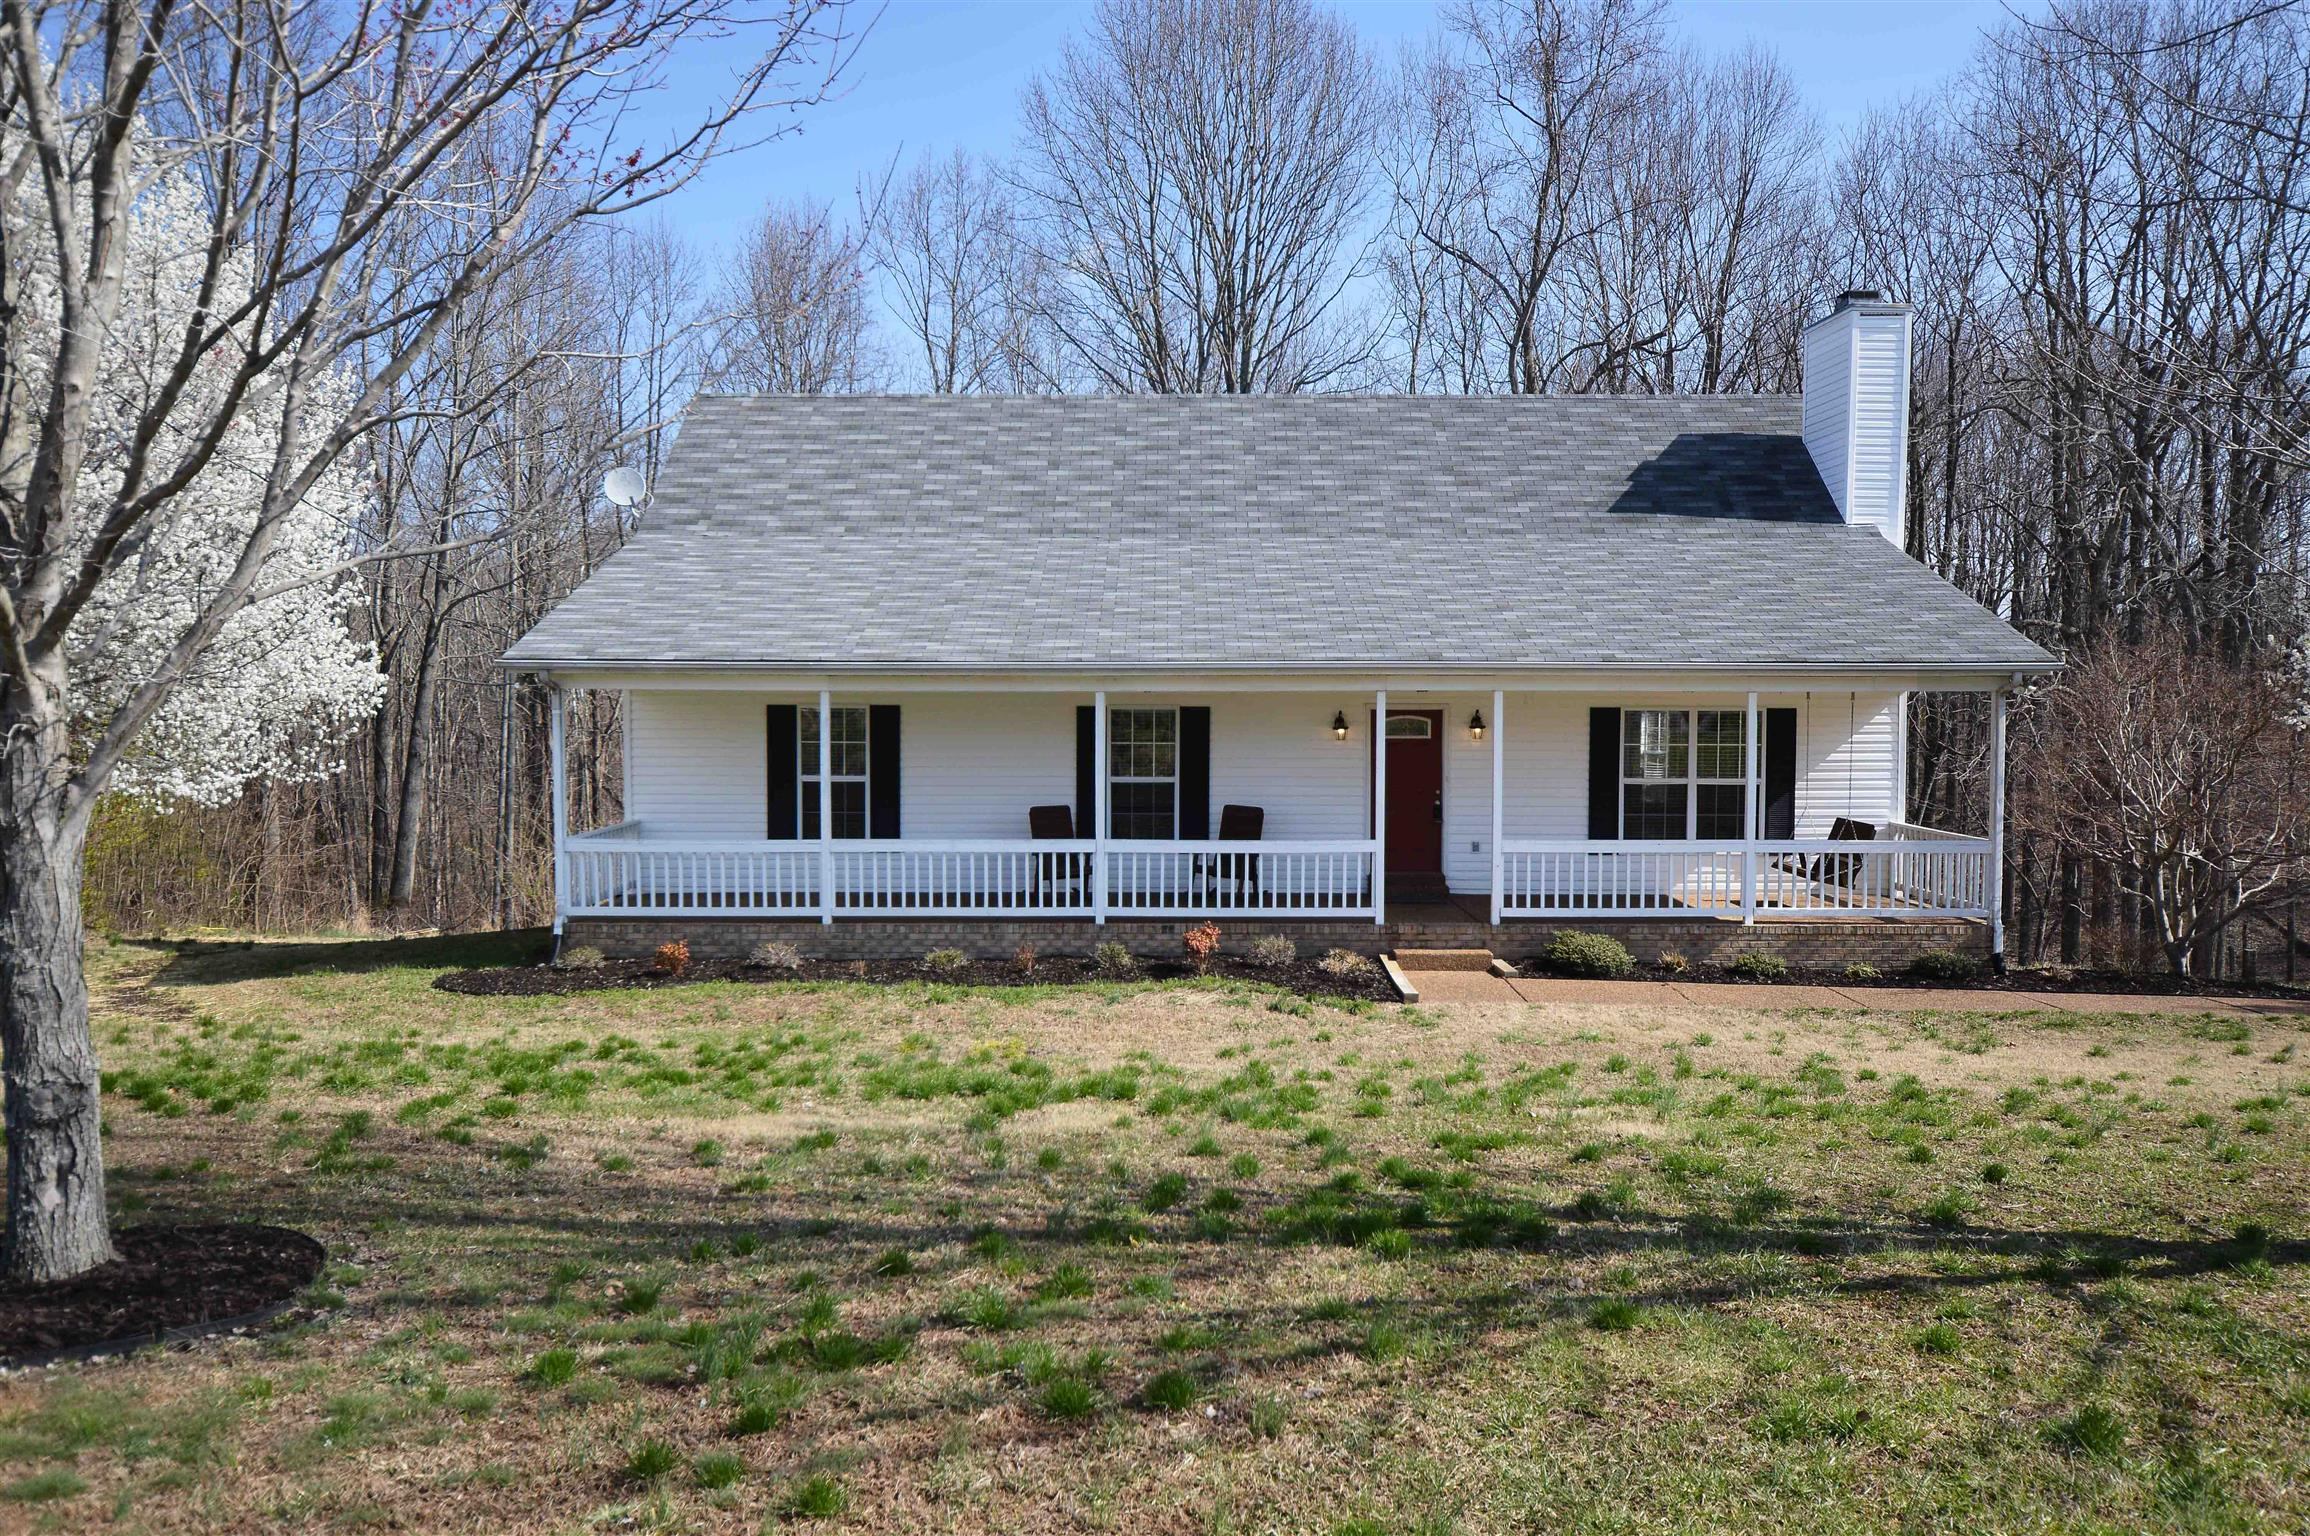 1435 Hidden Trails Dr, Goodlettsville in Robertson County County, TN 37072 Home for Sale